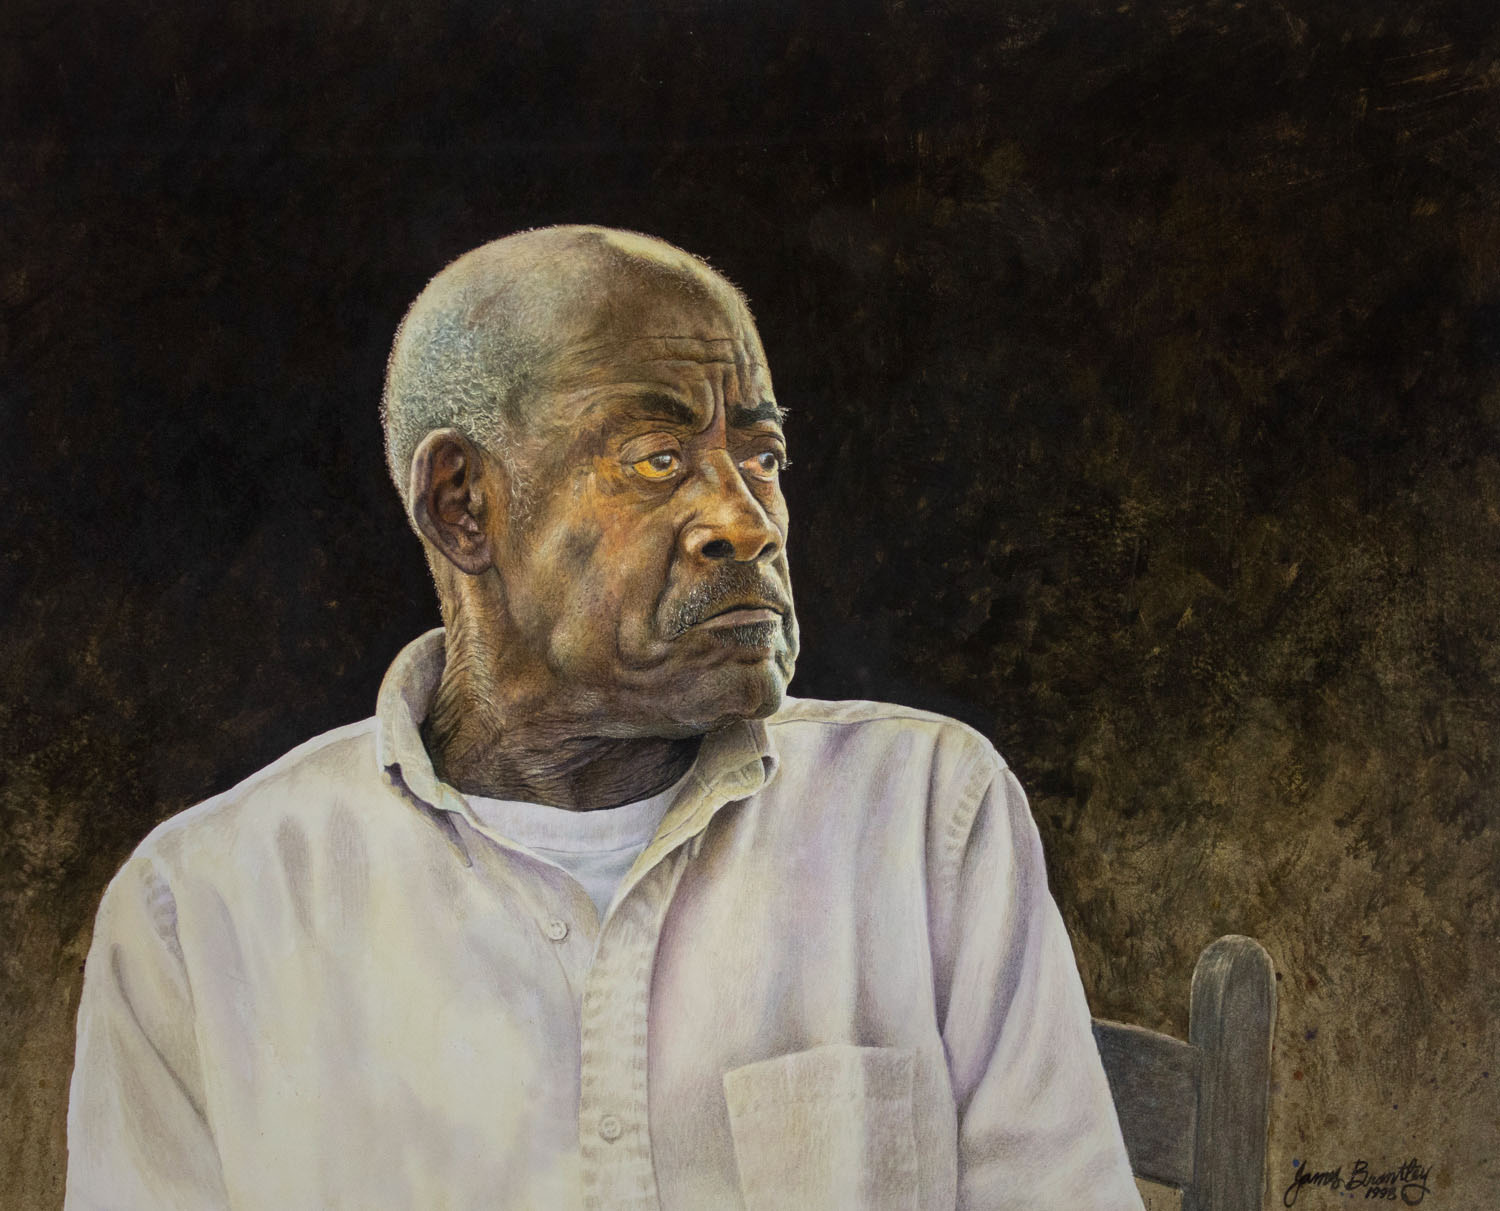 Mr. Reeves by James Brantley, 1998, Watercolor, Cheaha Exhibition Purchase Award Winner